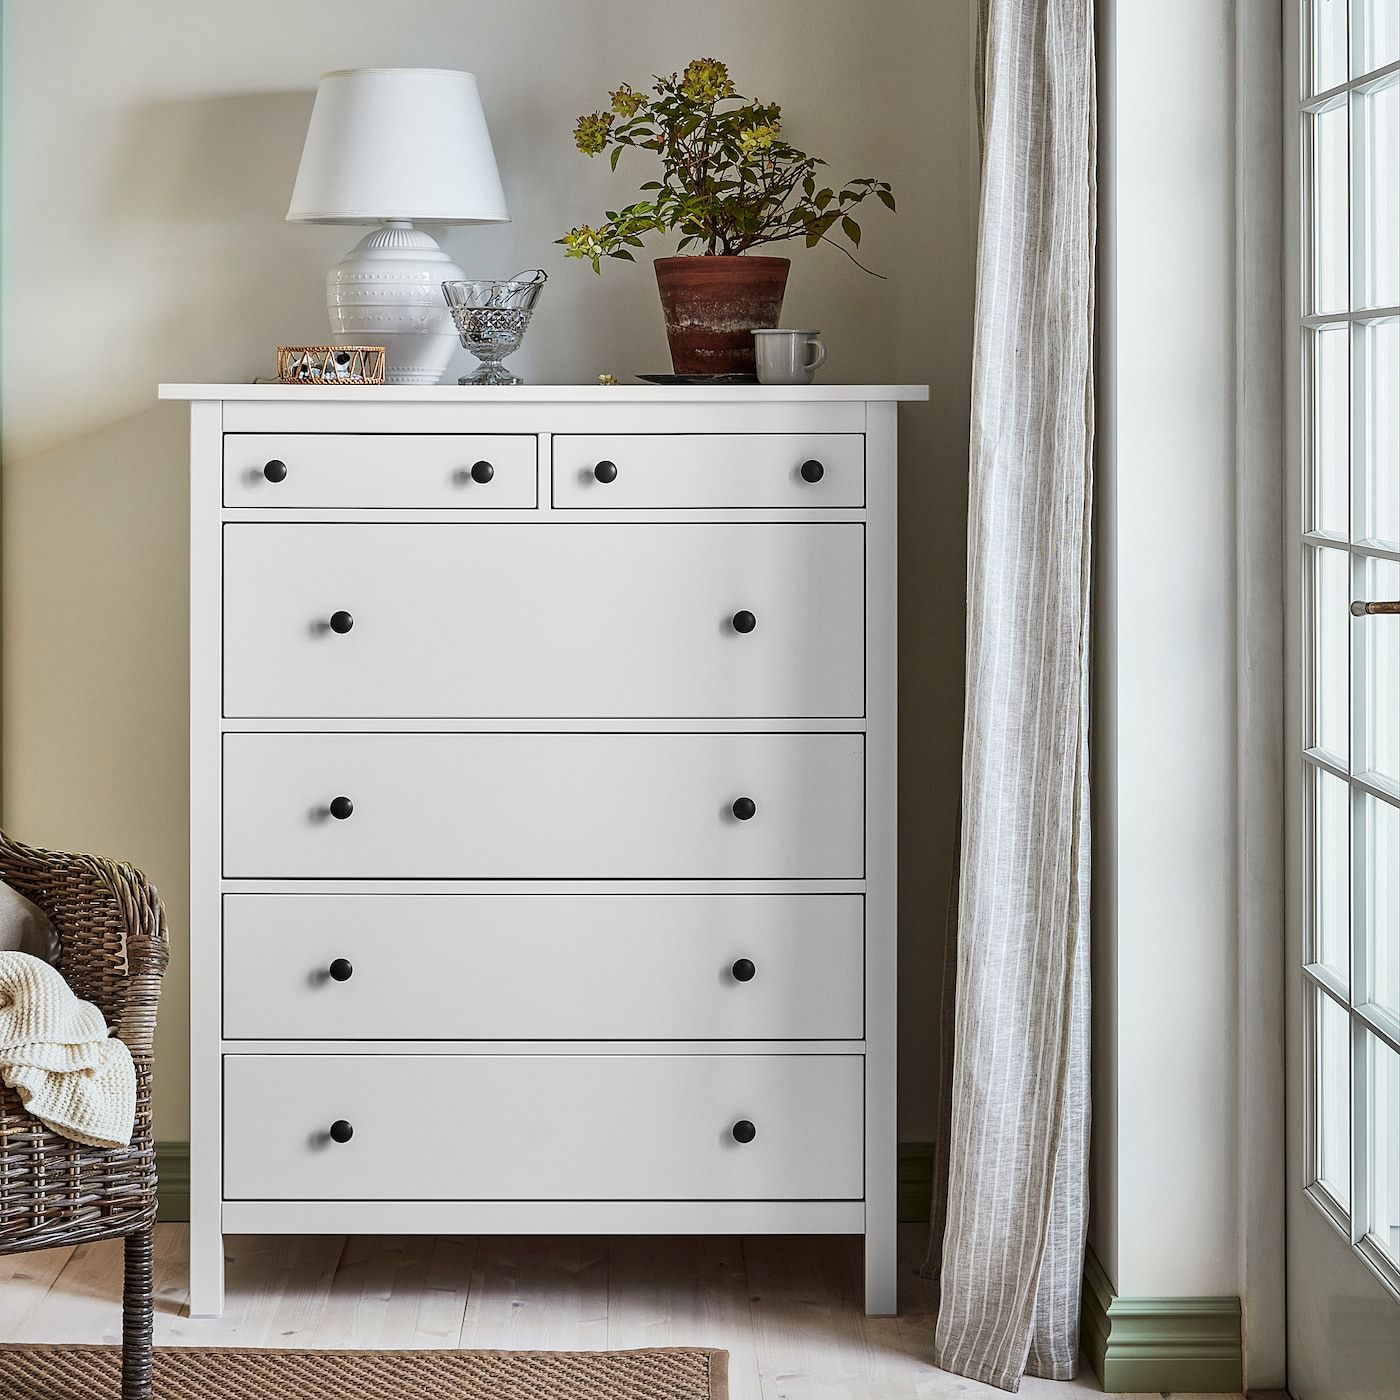 Hemnes 6 Drawer Chest White 42 1 2x51 5 8 Bedroom Chest Of